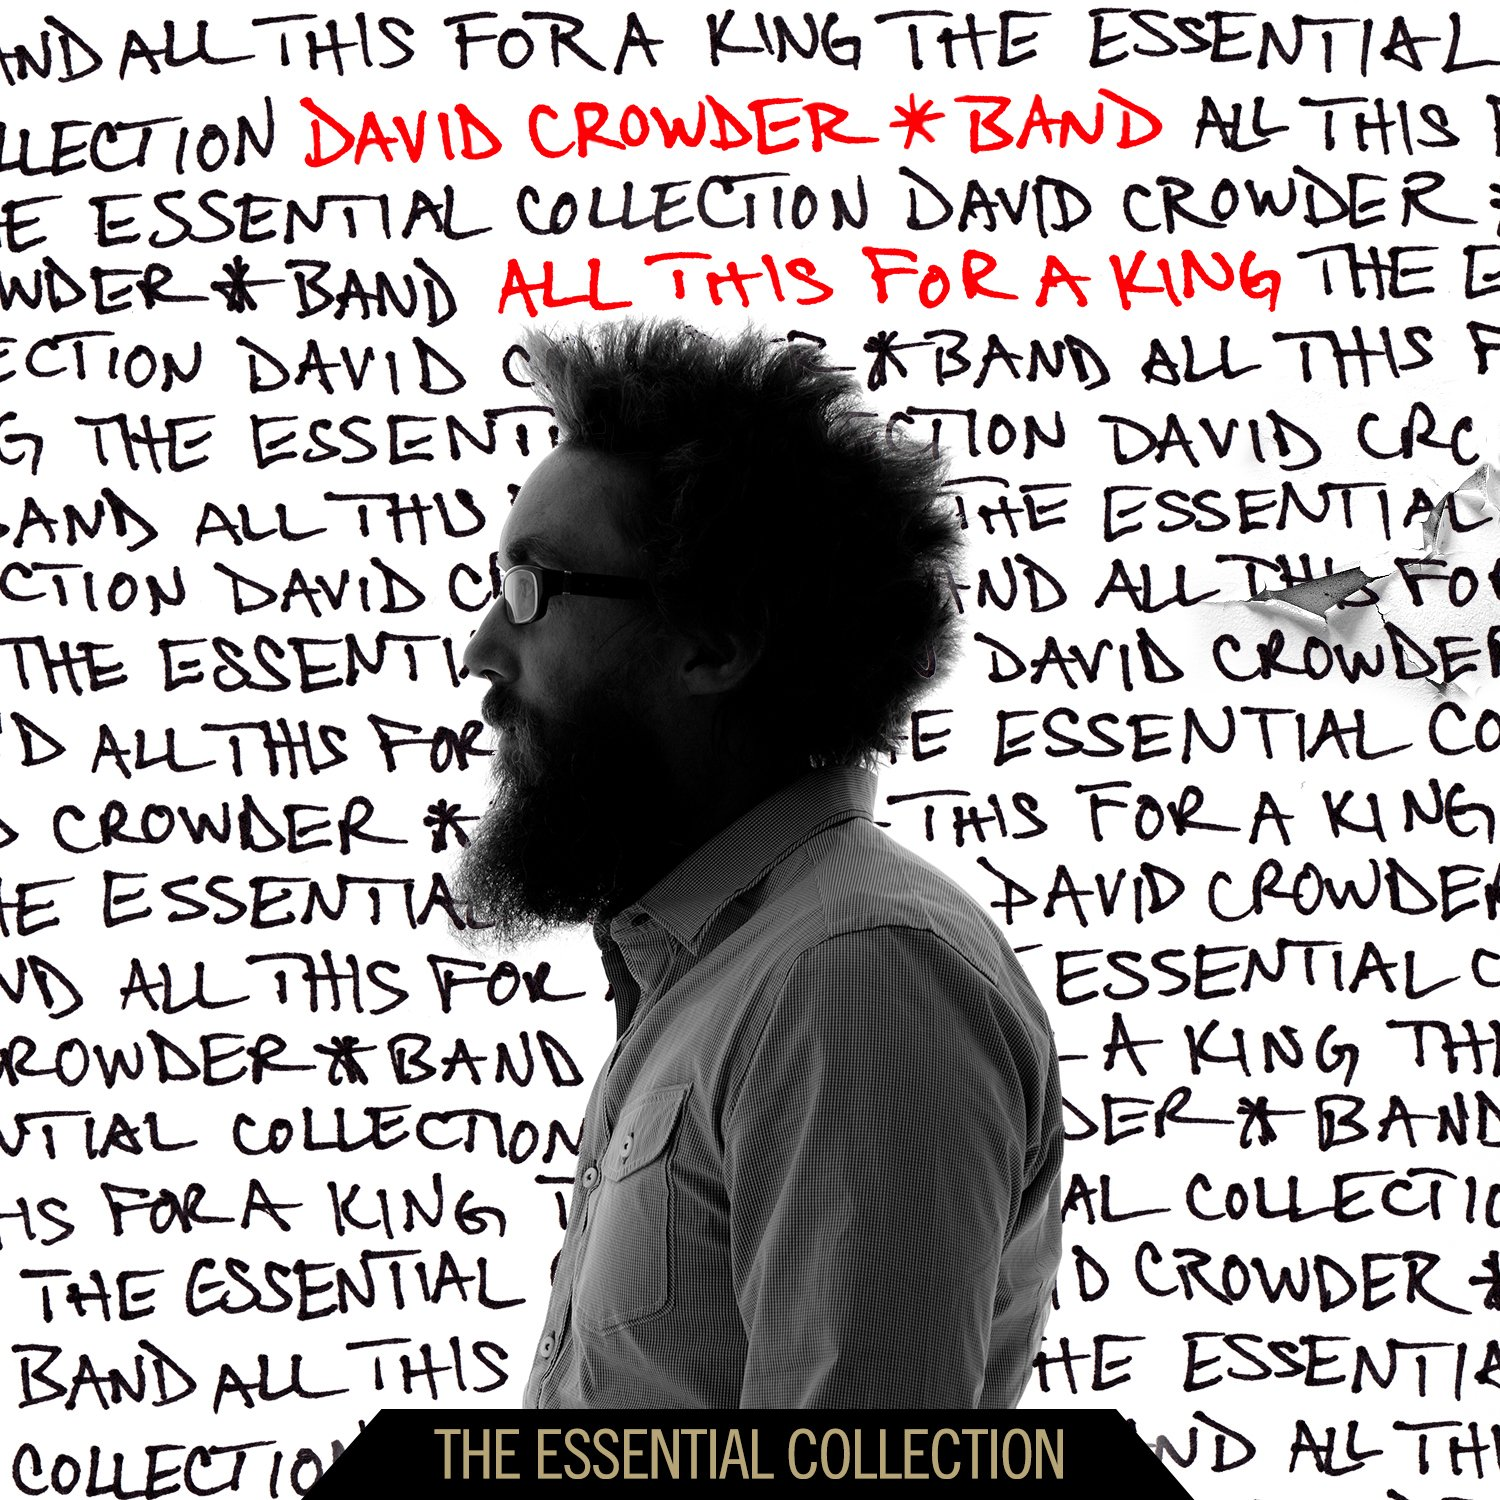 David Crowder Band - All This For A King: The Essential Collection